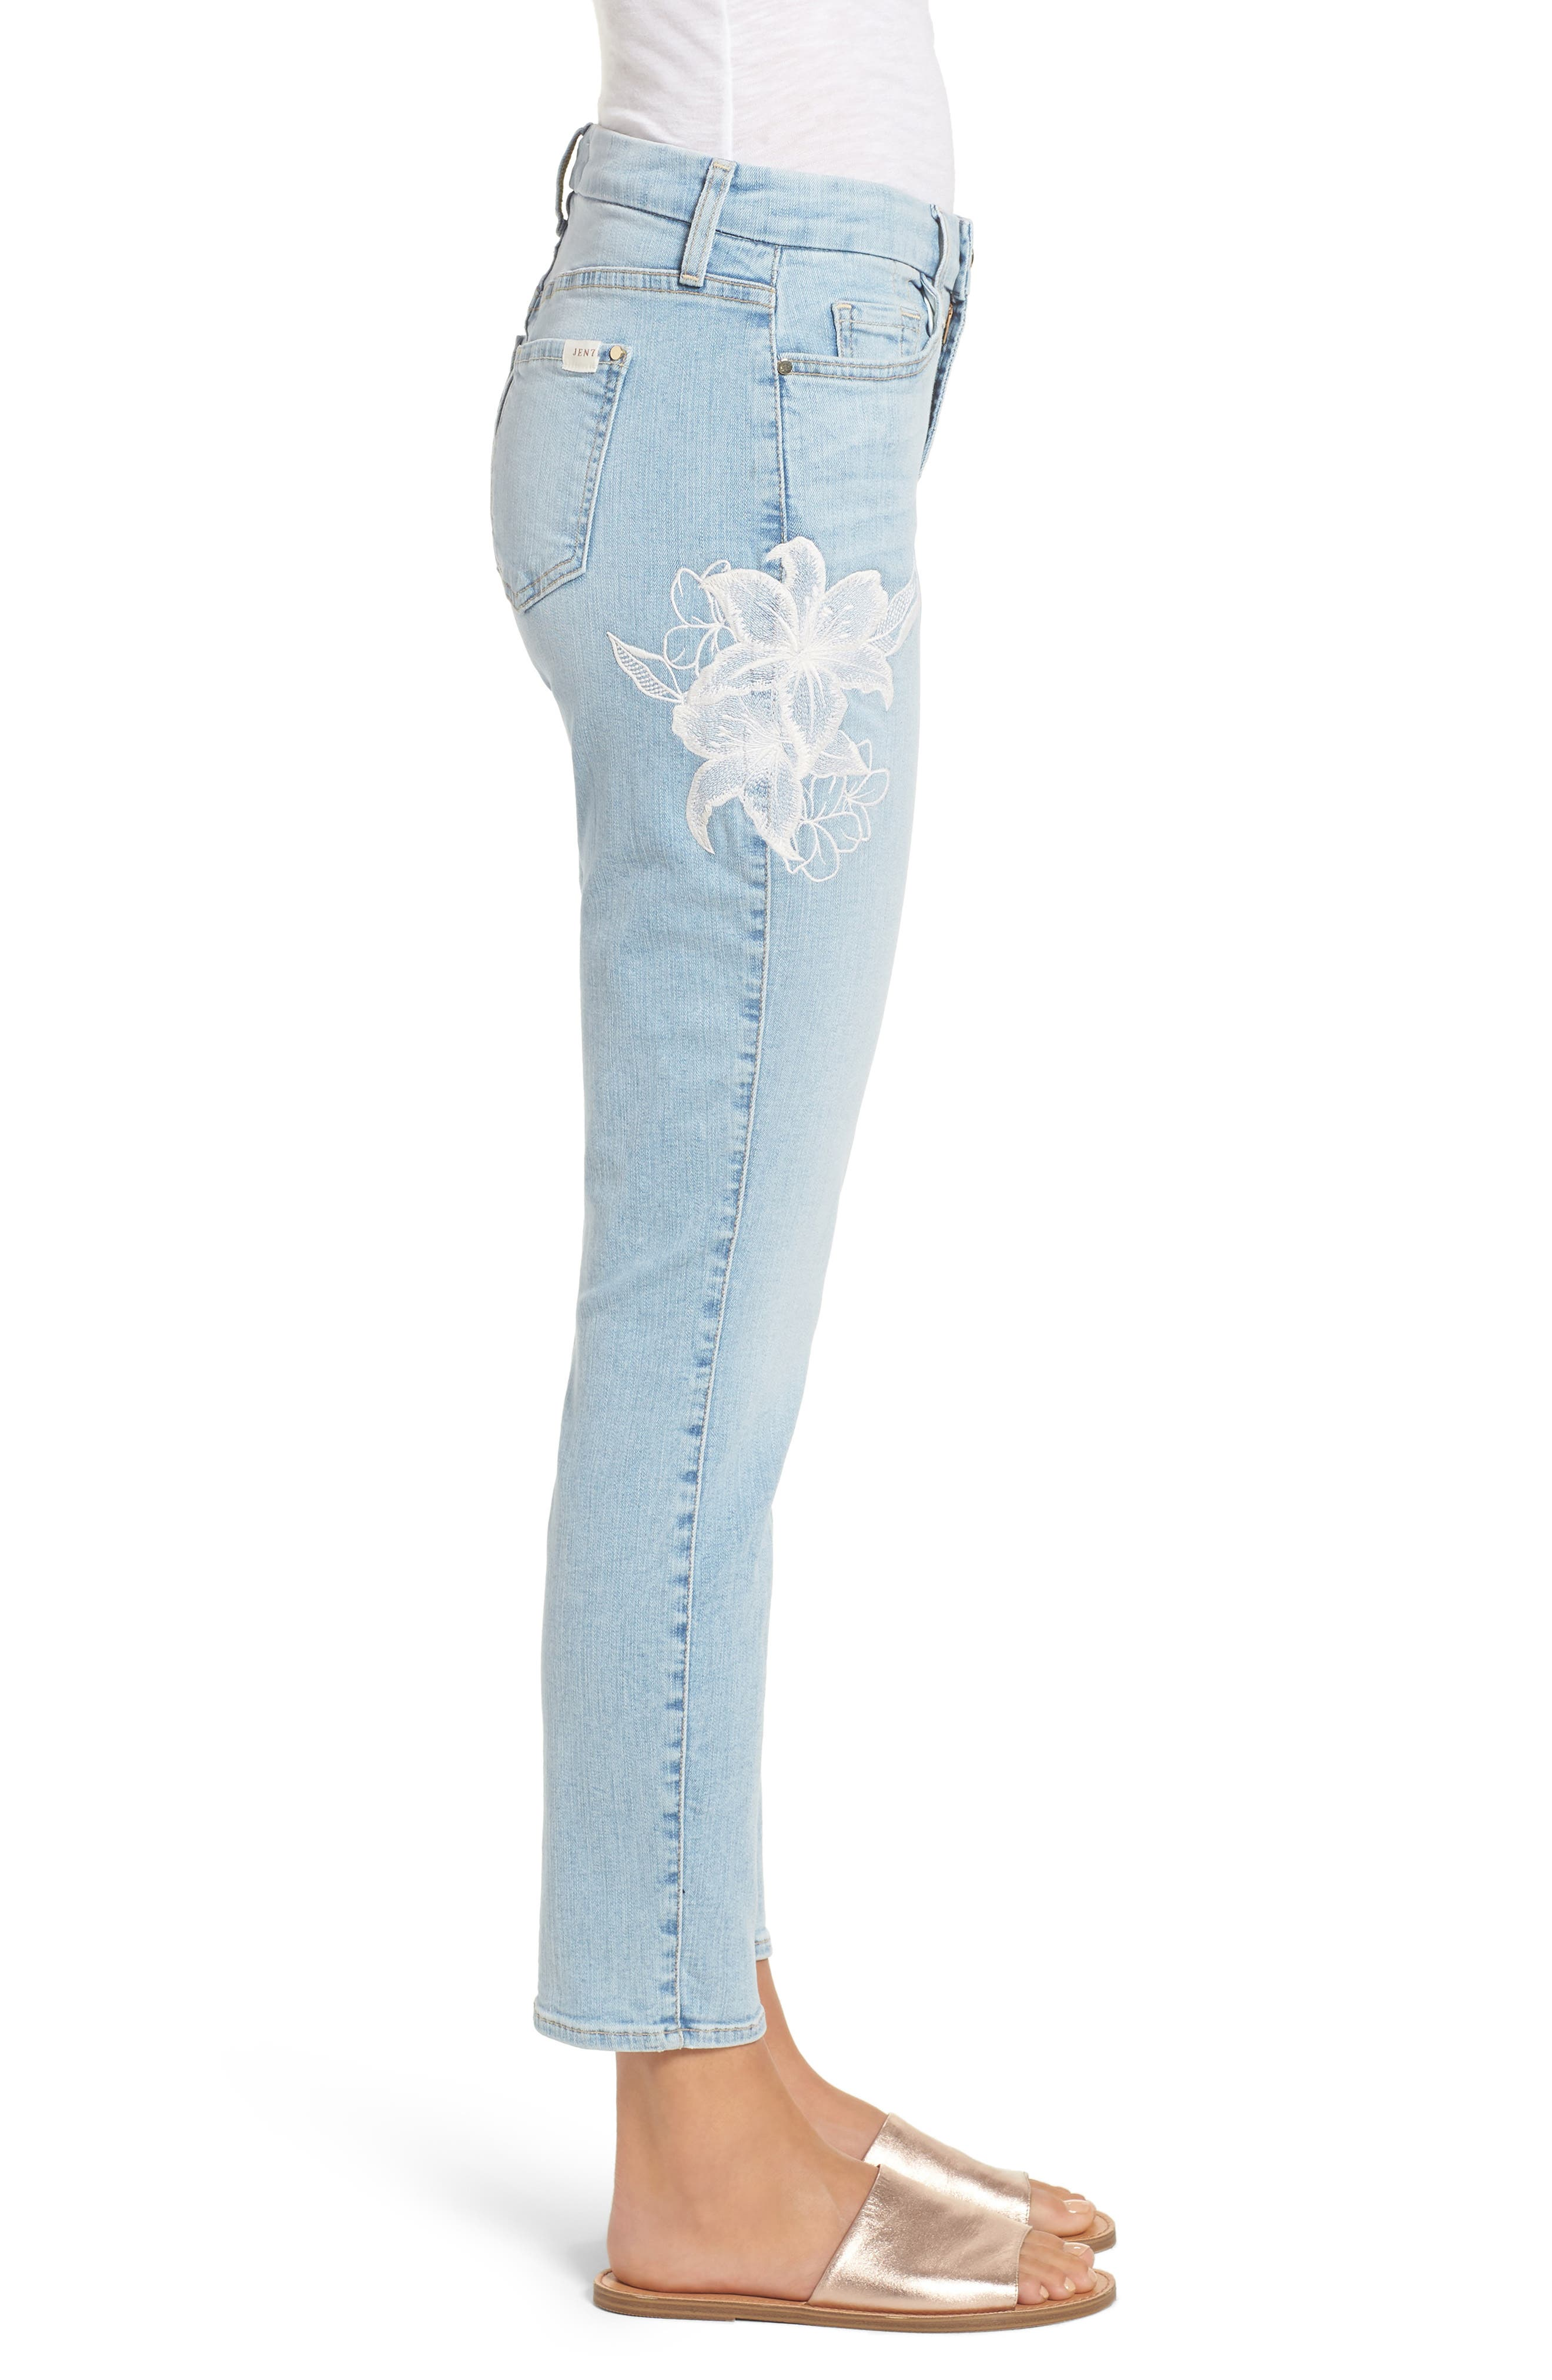 Jen 7 Embroidered Stretch Sklnny Ankle Jeans,                             Alternate thumbnail 3, color,                             RICHE TOUCH PLAYA VISTA